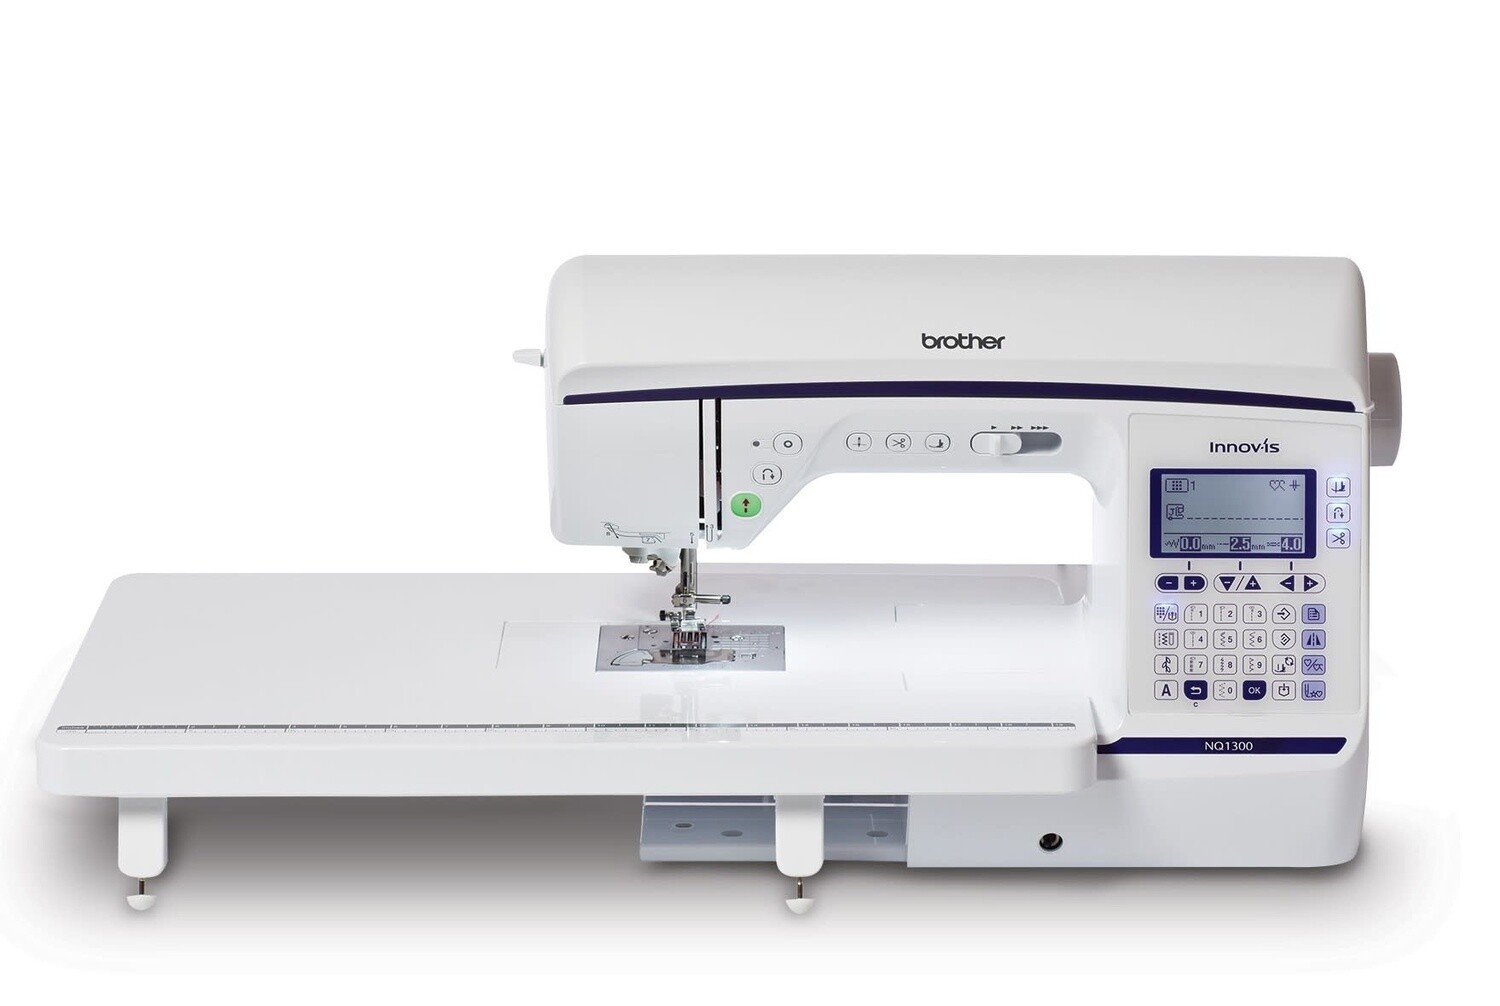 Brother NQ1300